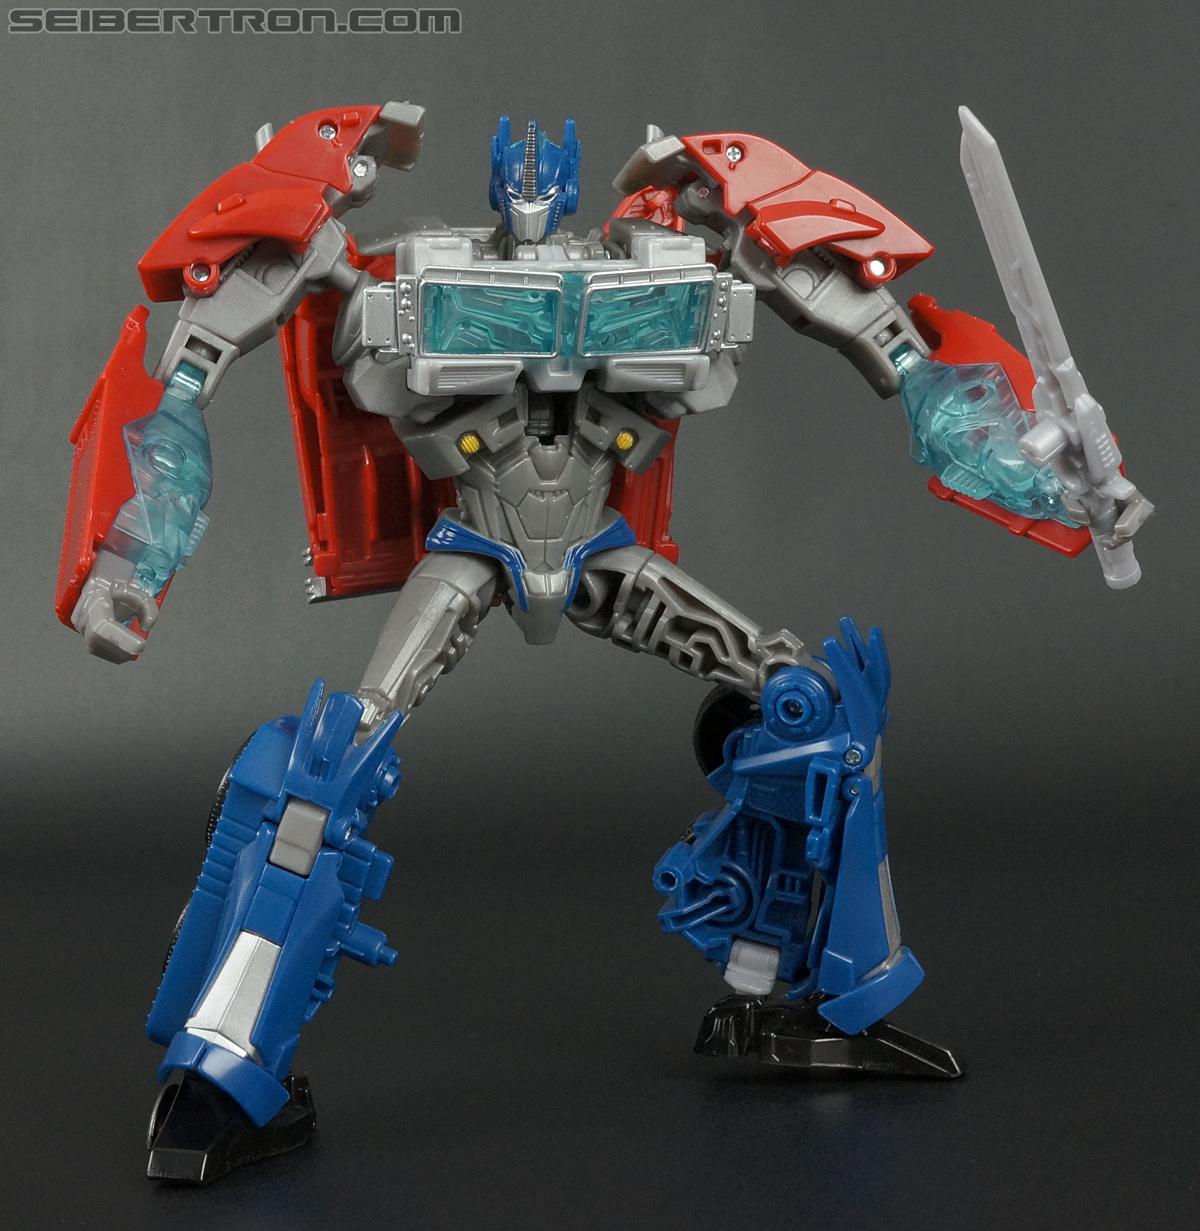 Transformers Prime: Robots In Disguise Optimus Prime (Image #117 of 176)